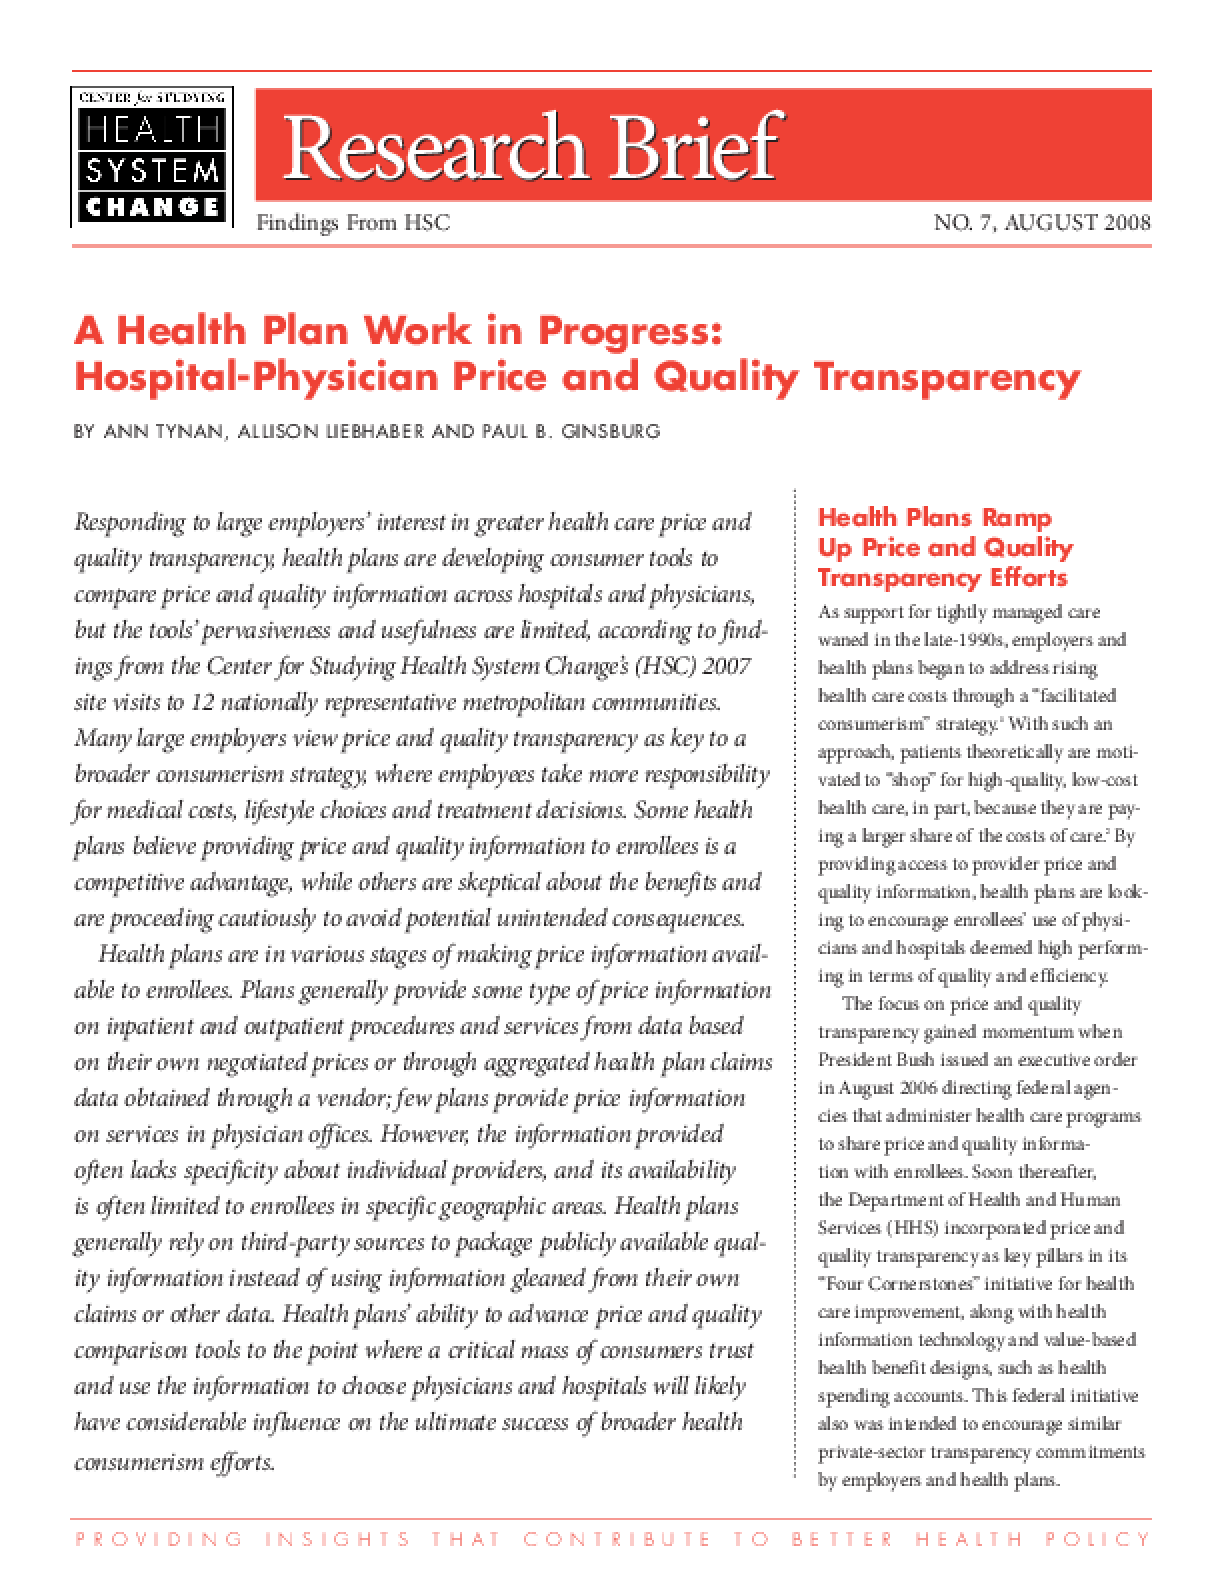 A Health Plan Work in Progress: Hospital-Physician Price and Quality Transparency